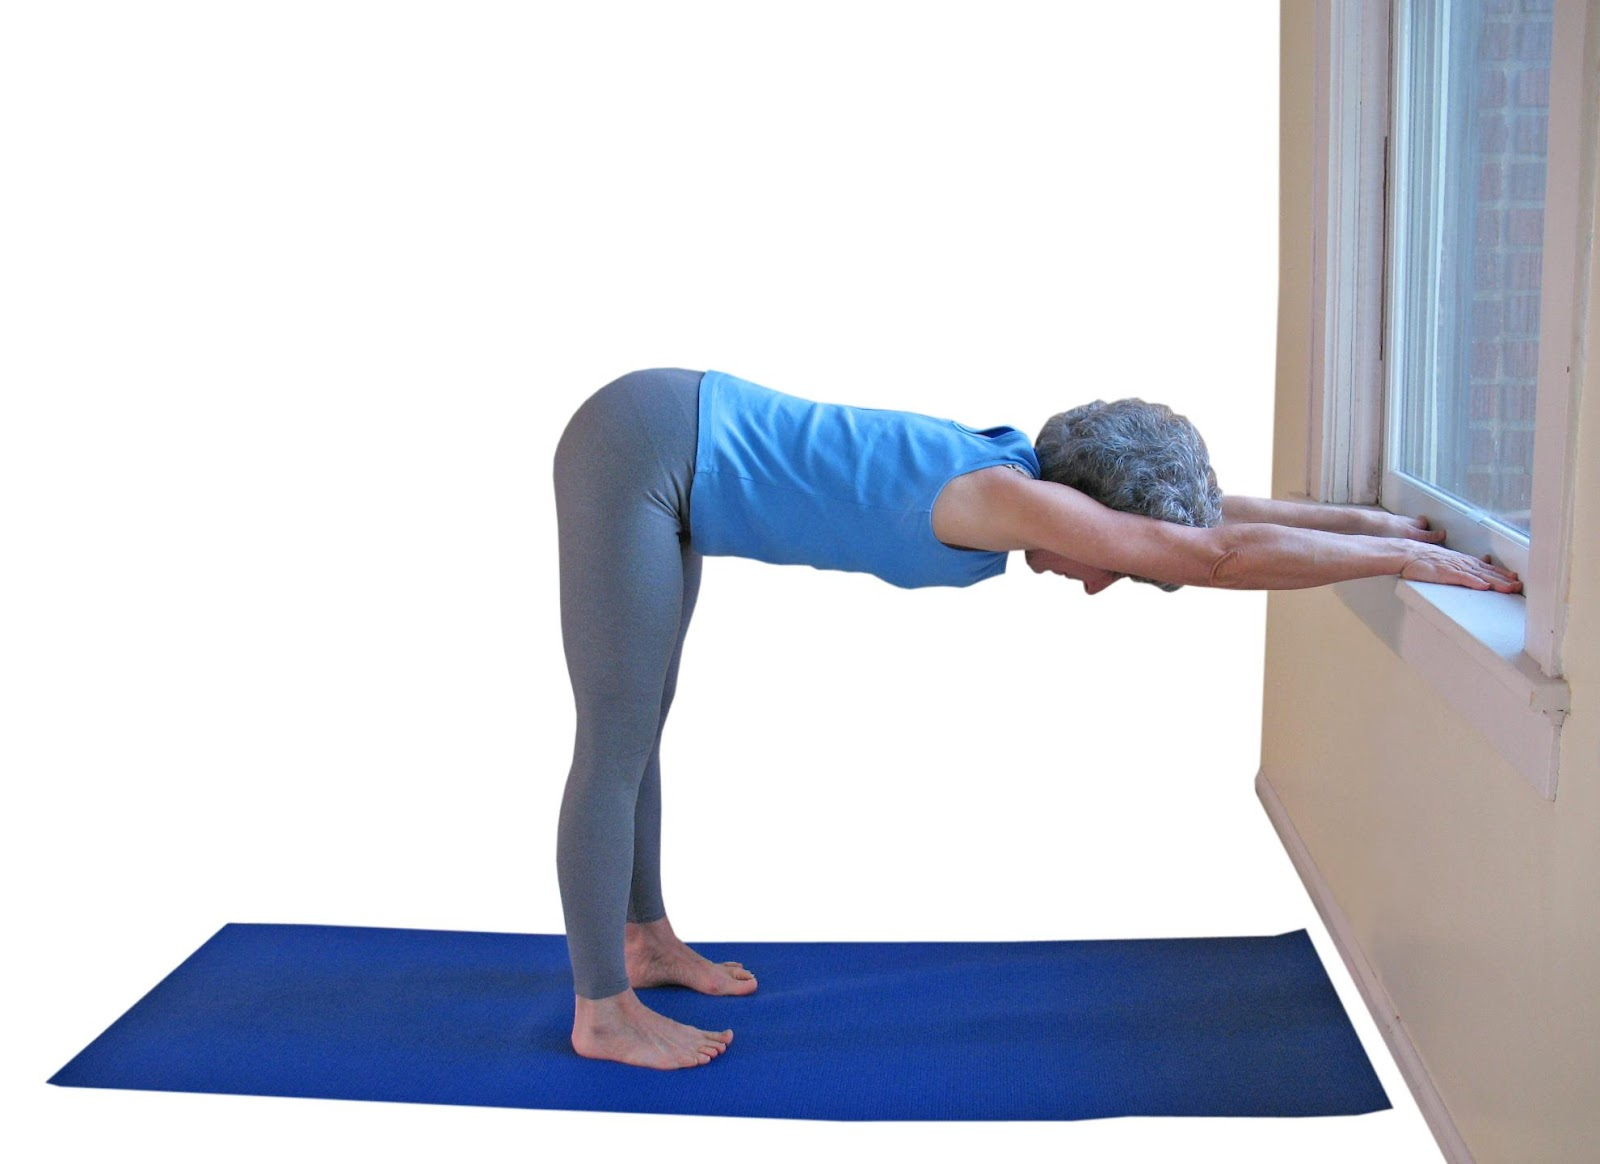 lillah schwartz practicing Downward Dog Prep yoga pose a therapeutic yoga for backpain